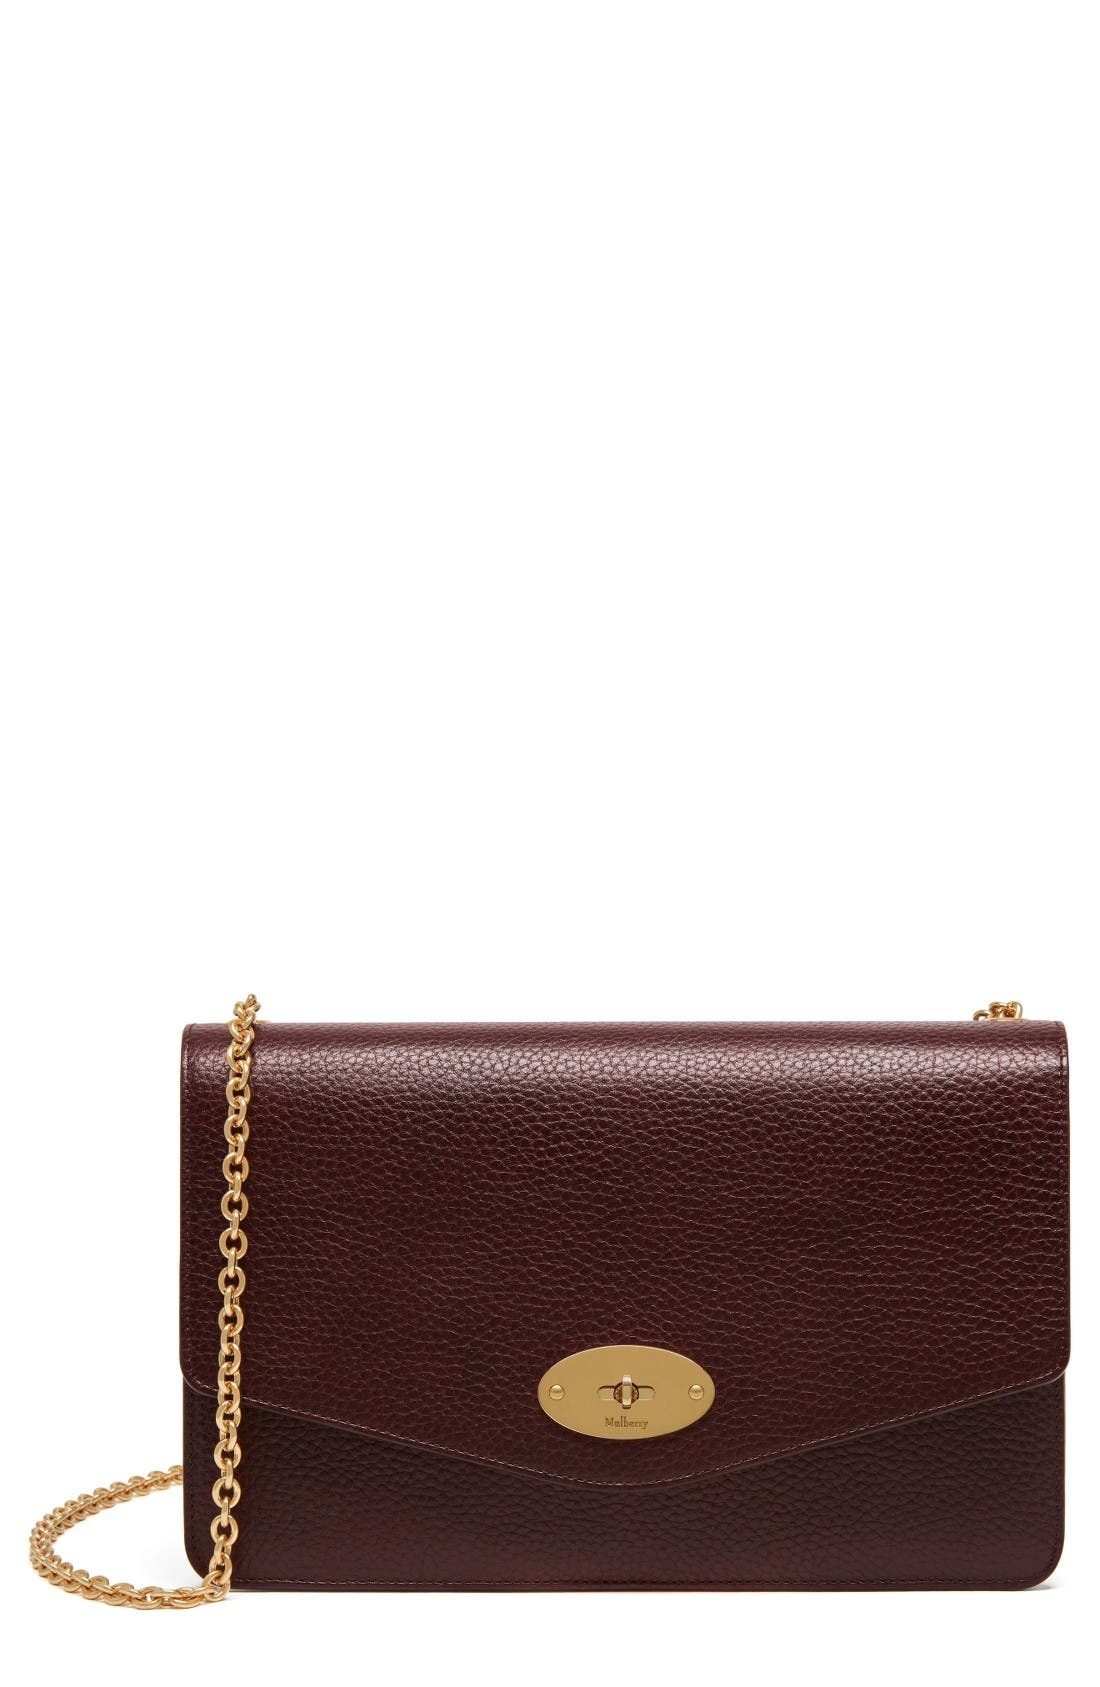 Main Image - Mulberry Large Postman's Lock Clutch